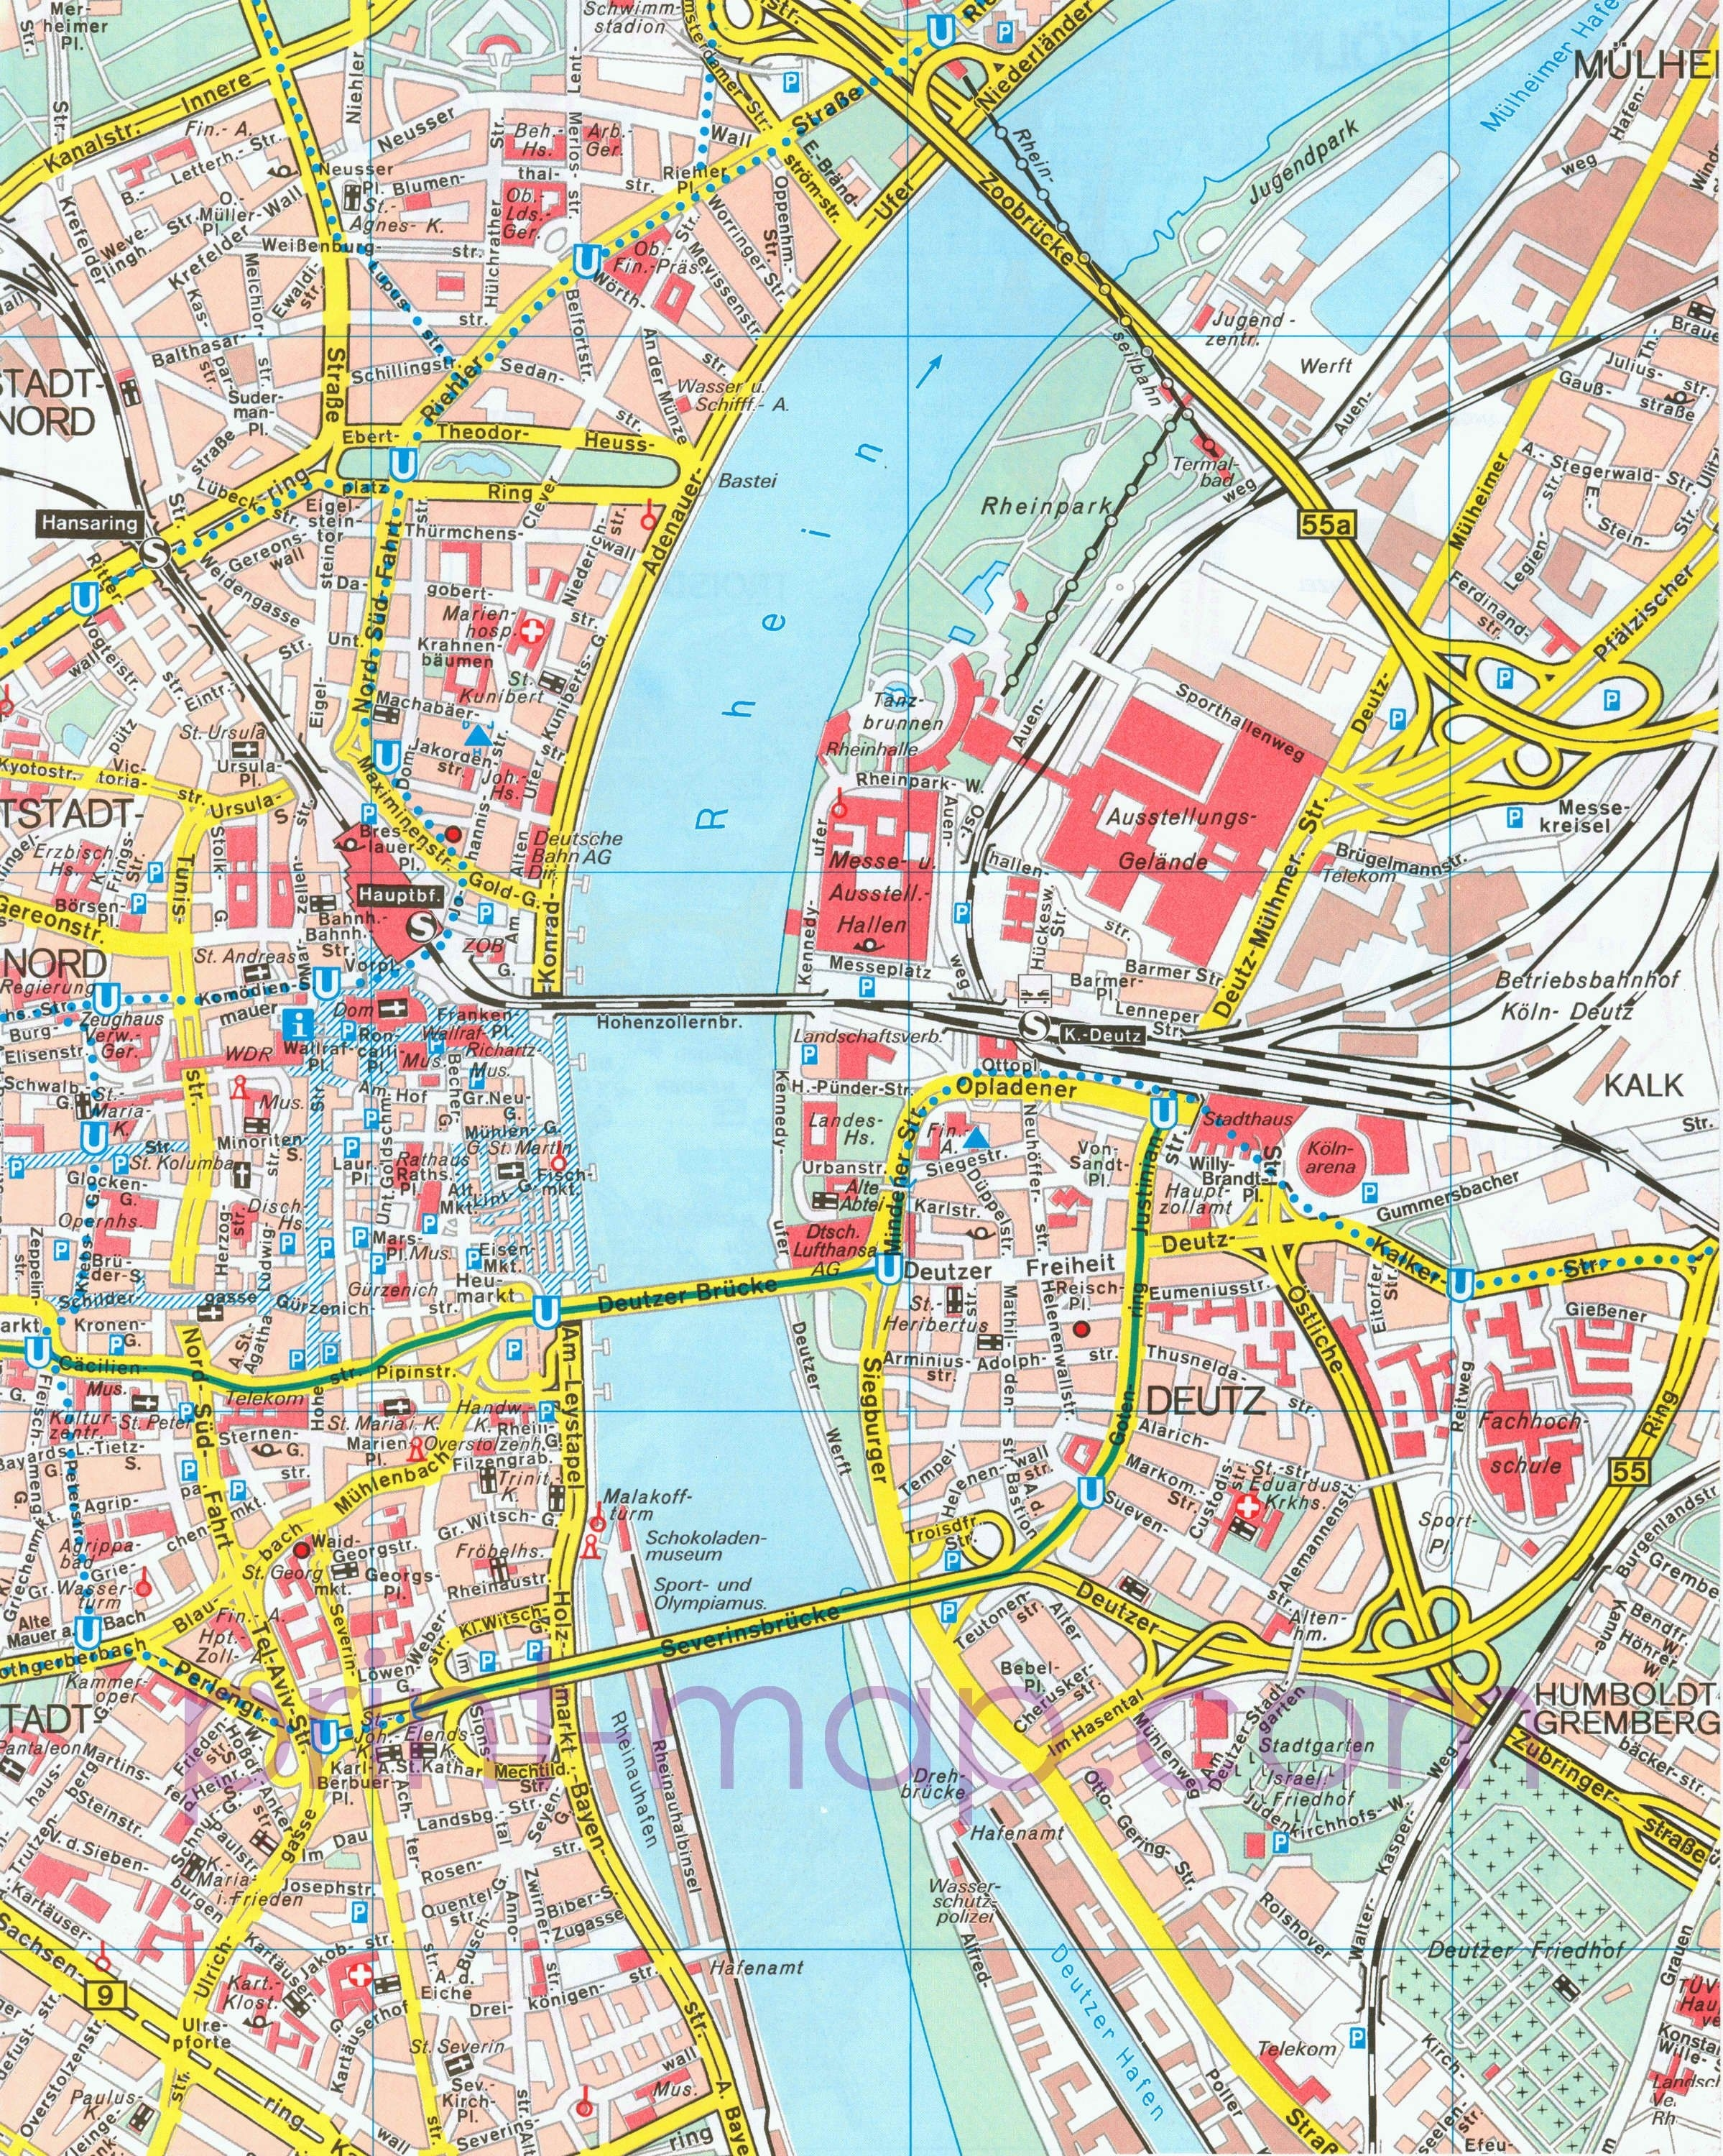 Pdf Map Of Cologne Germany | Tourism | Cologne Germany, Germany, Map inside Cologne Germany Map